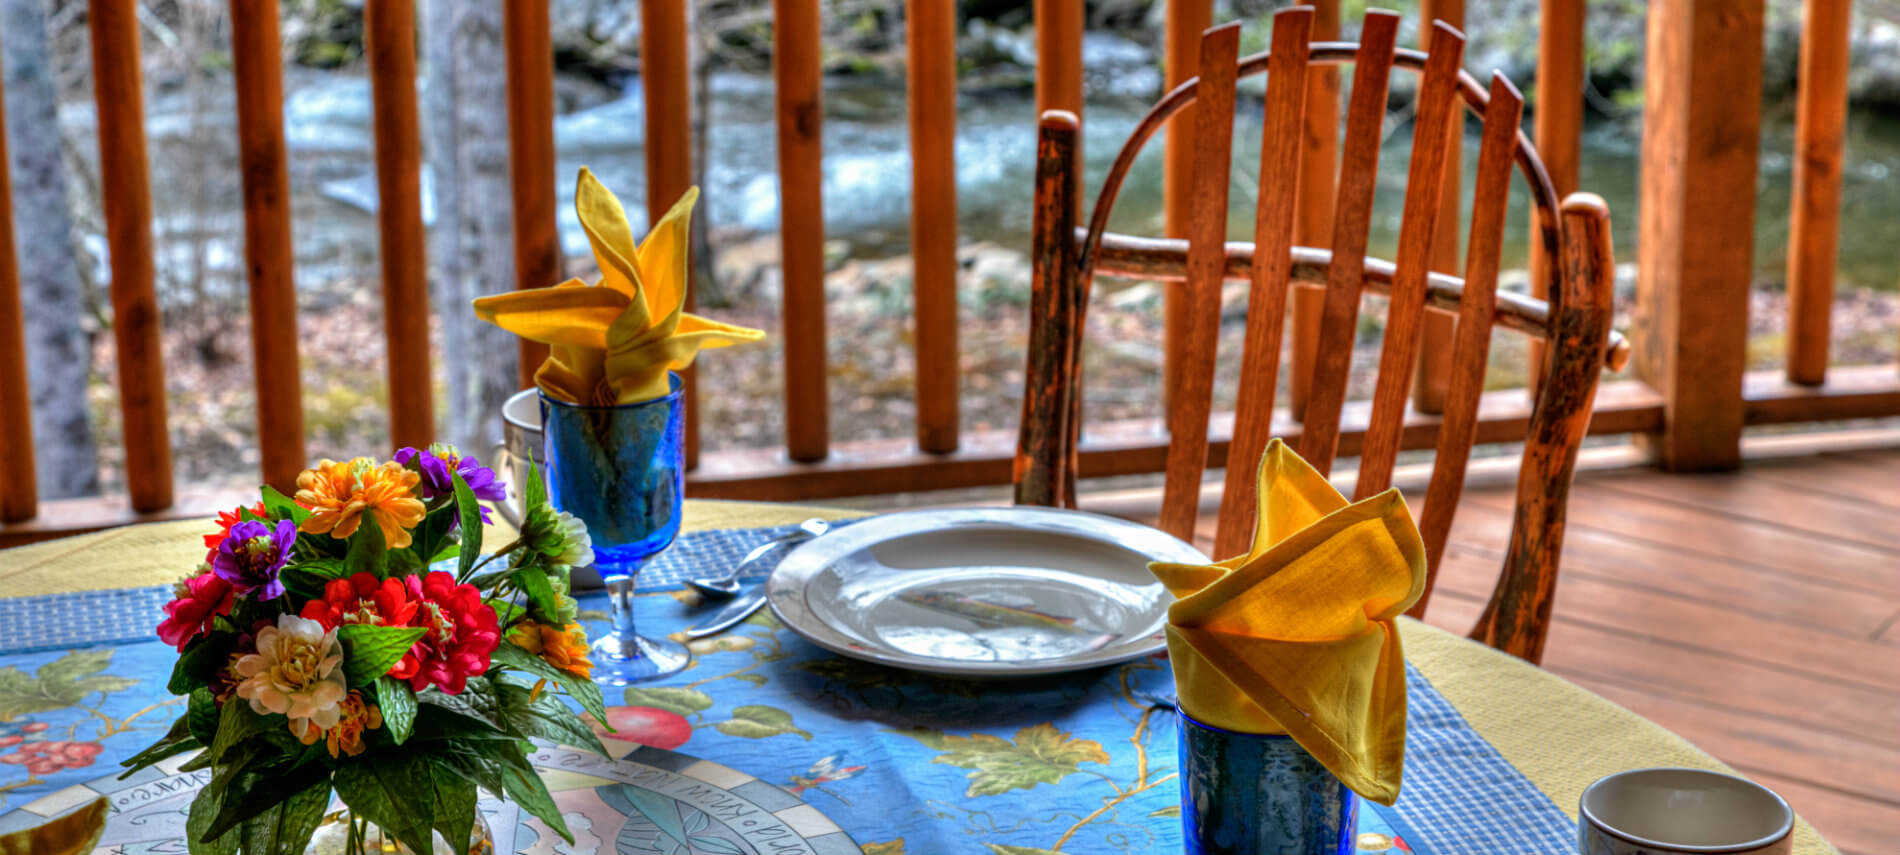 Table outside on porch. French flowers in the center of table. Fish plates with blue glasses and gold napkins . Background is the river that runs by.